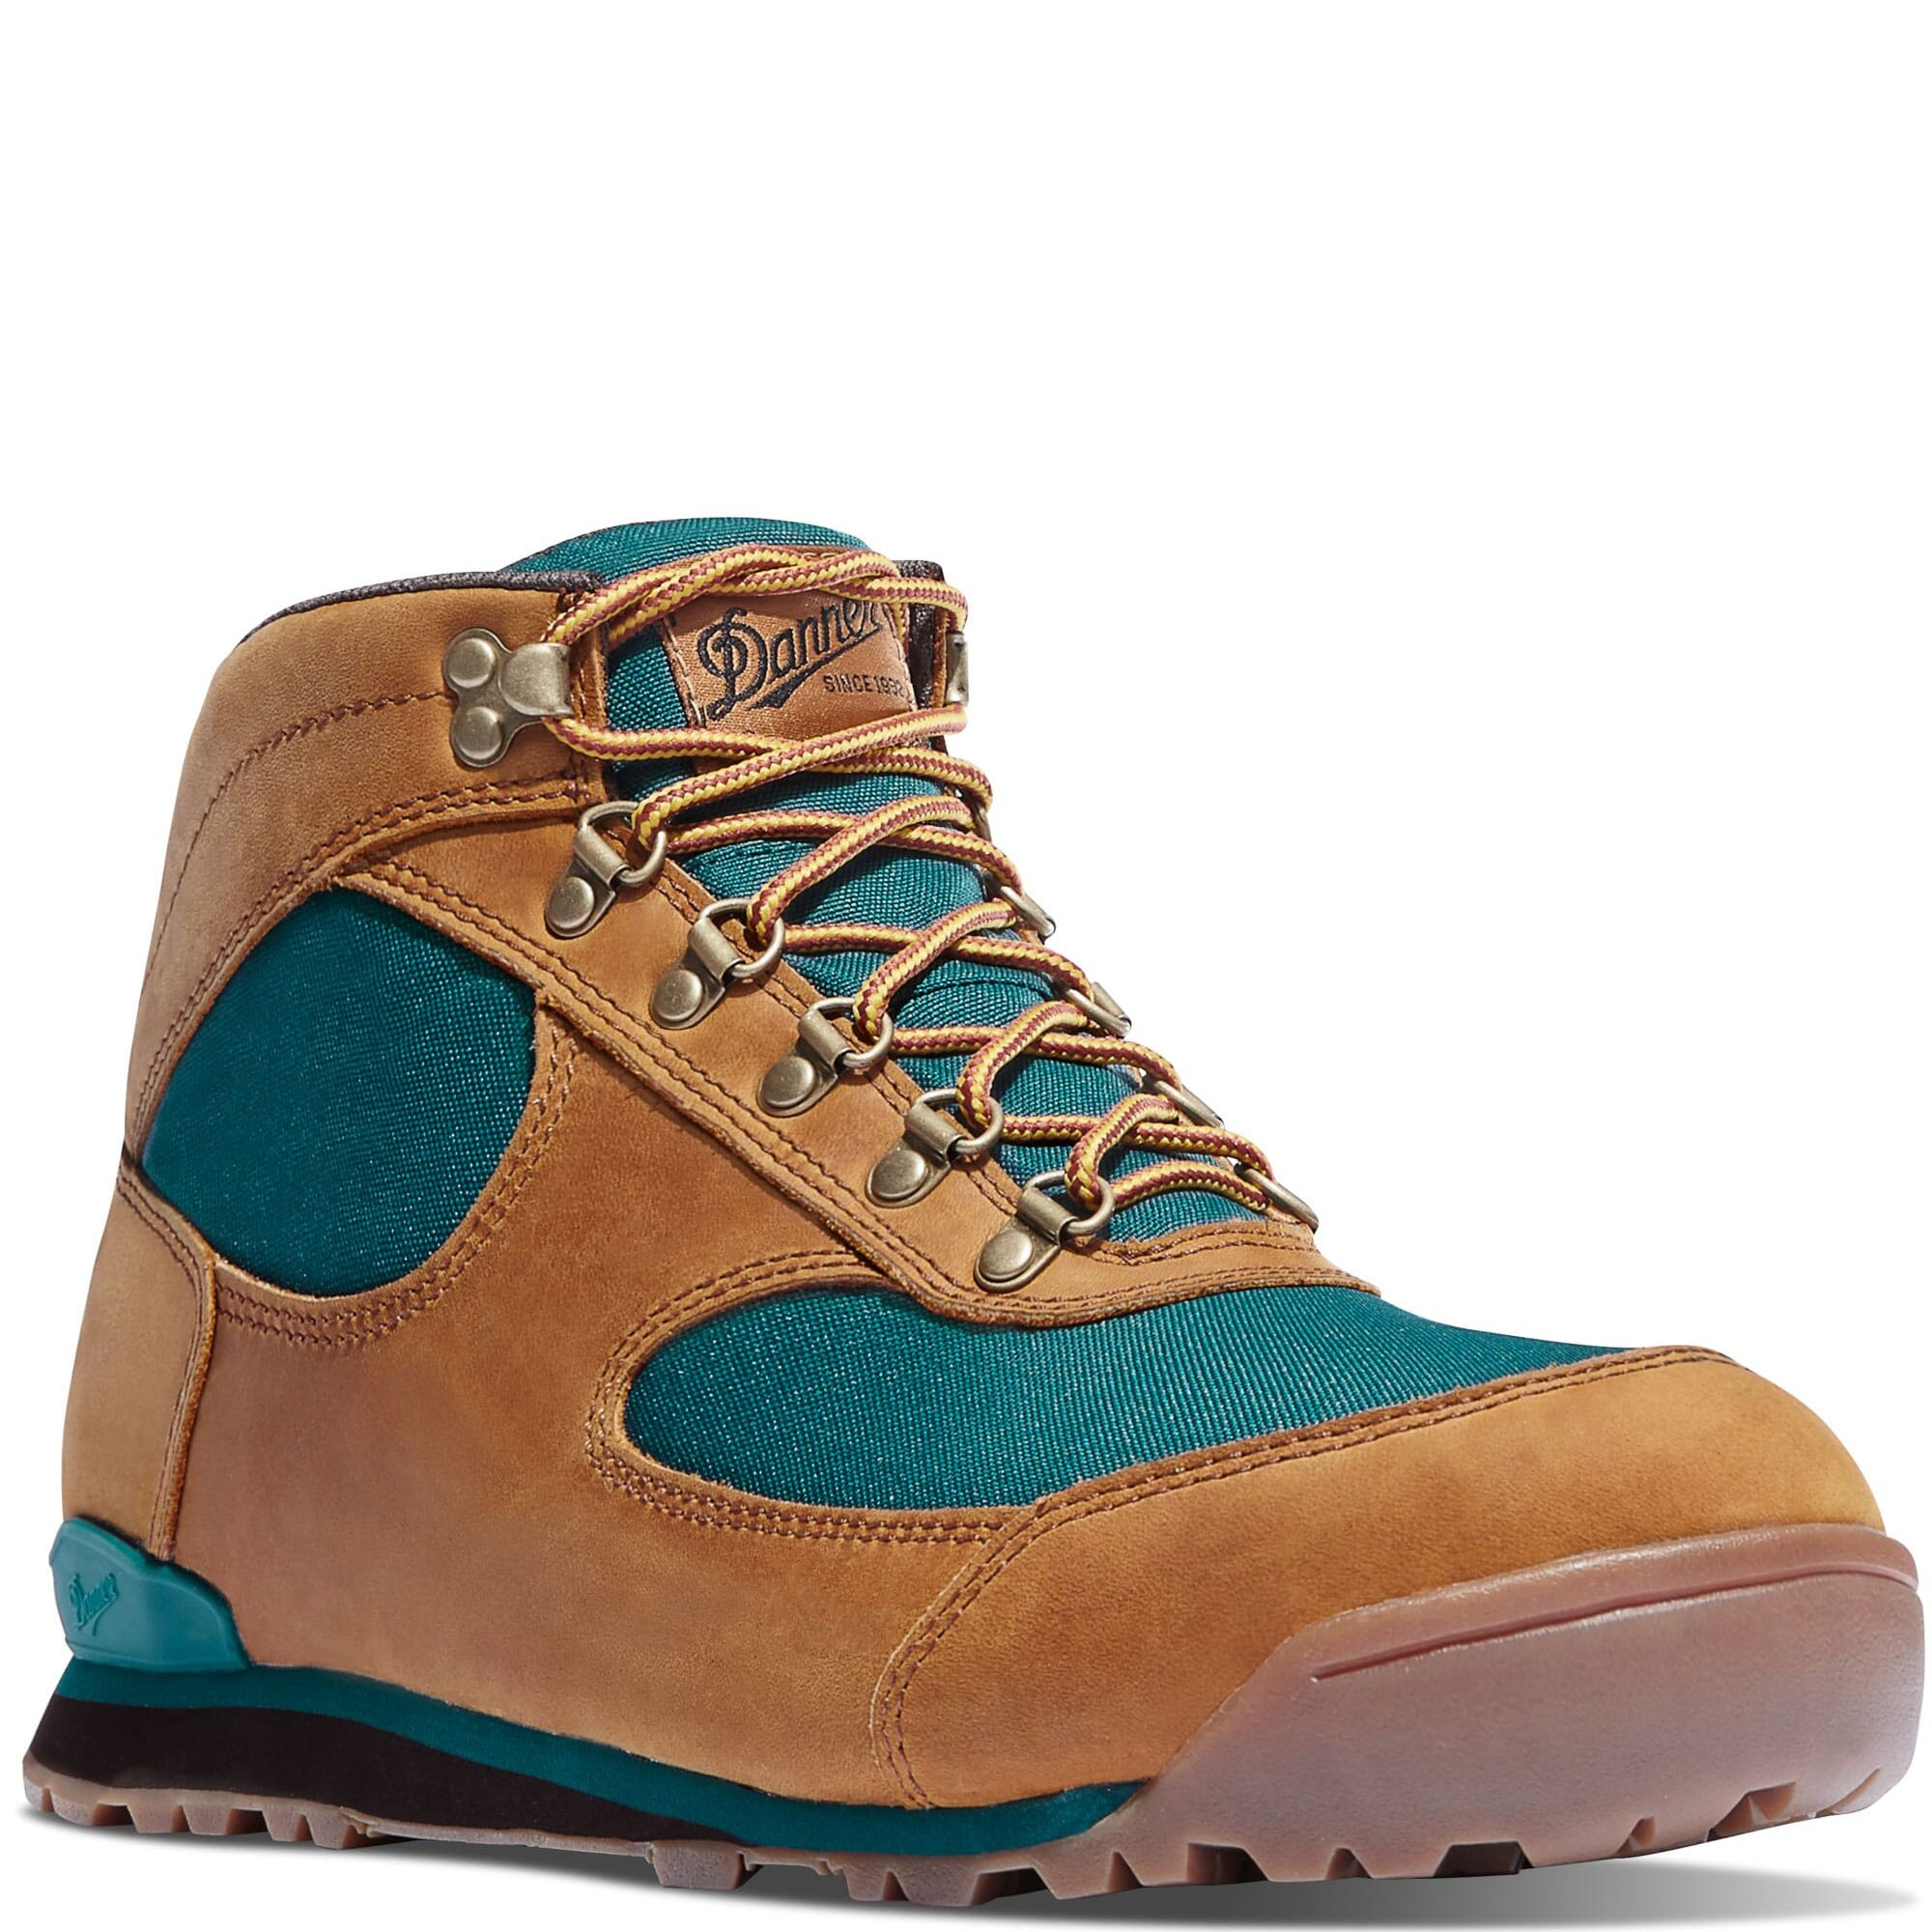 Image for Danner Women's Jag Hiking Boots - Distressed Brown/Deep Teal from bootbay